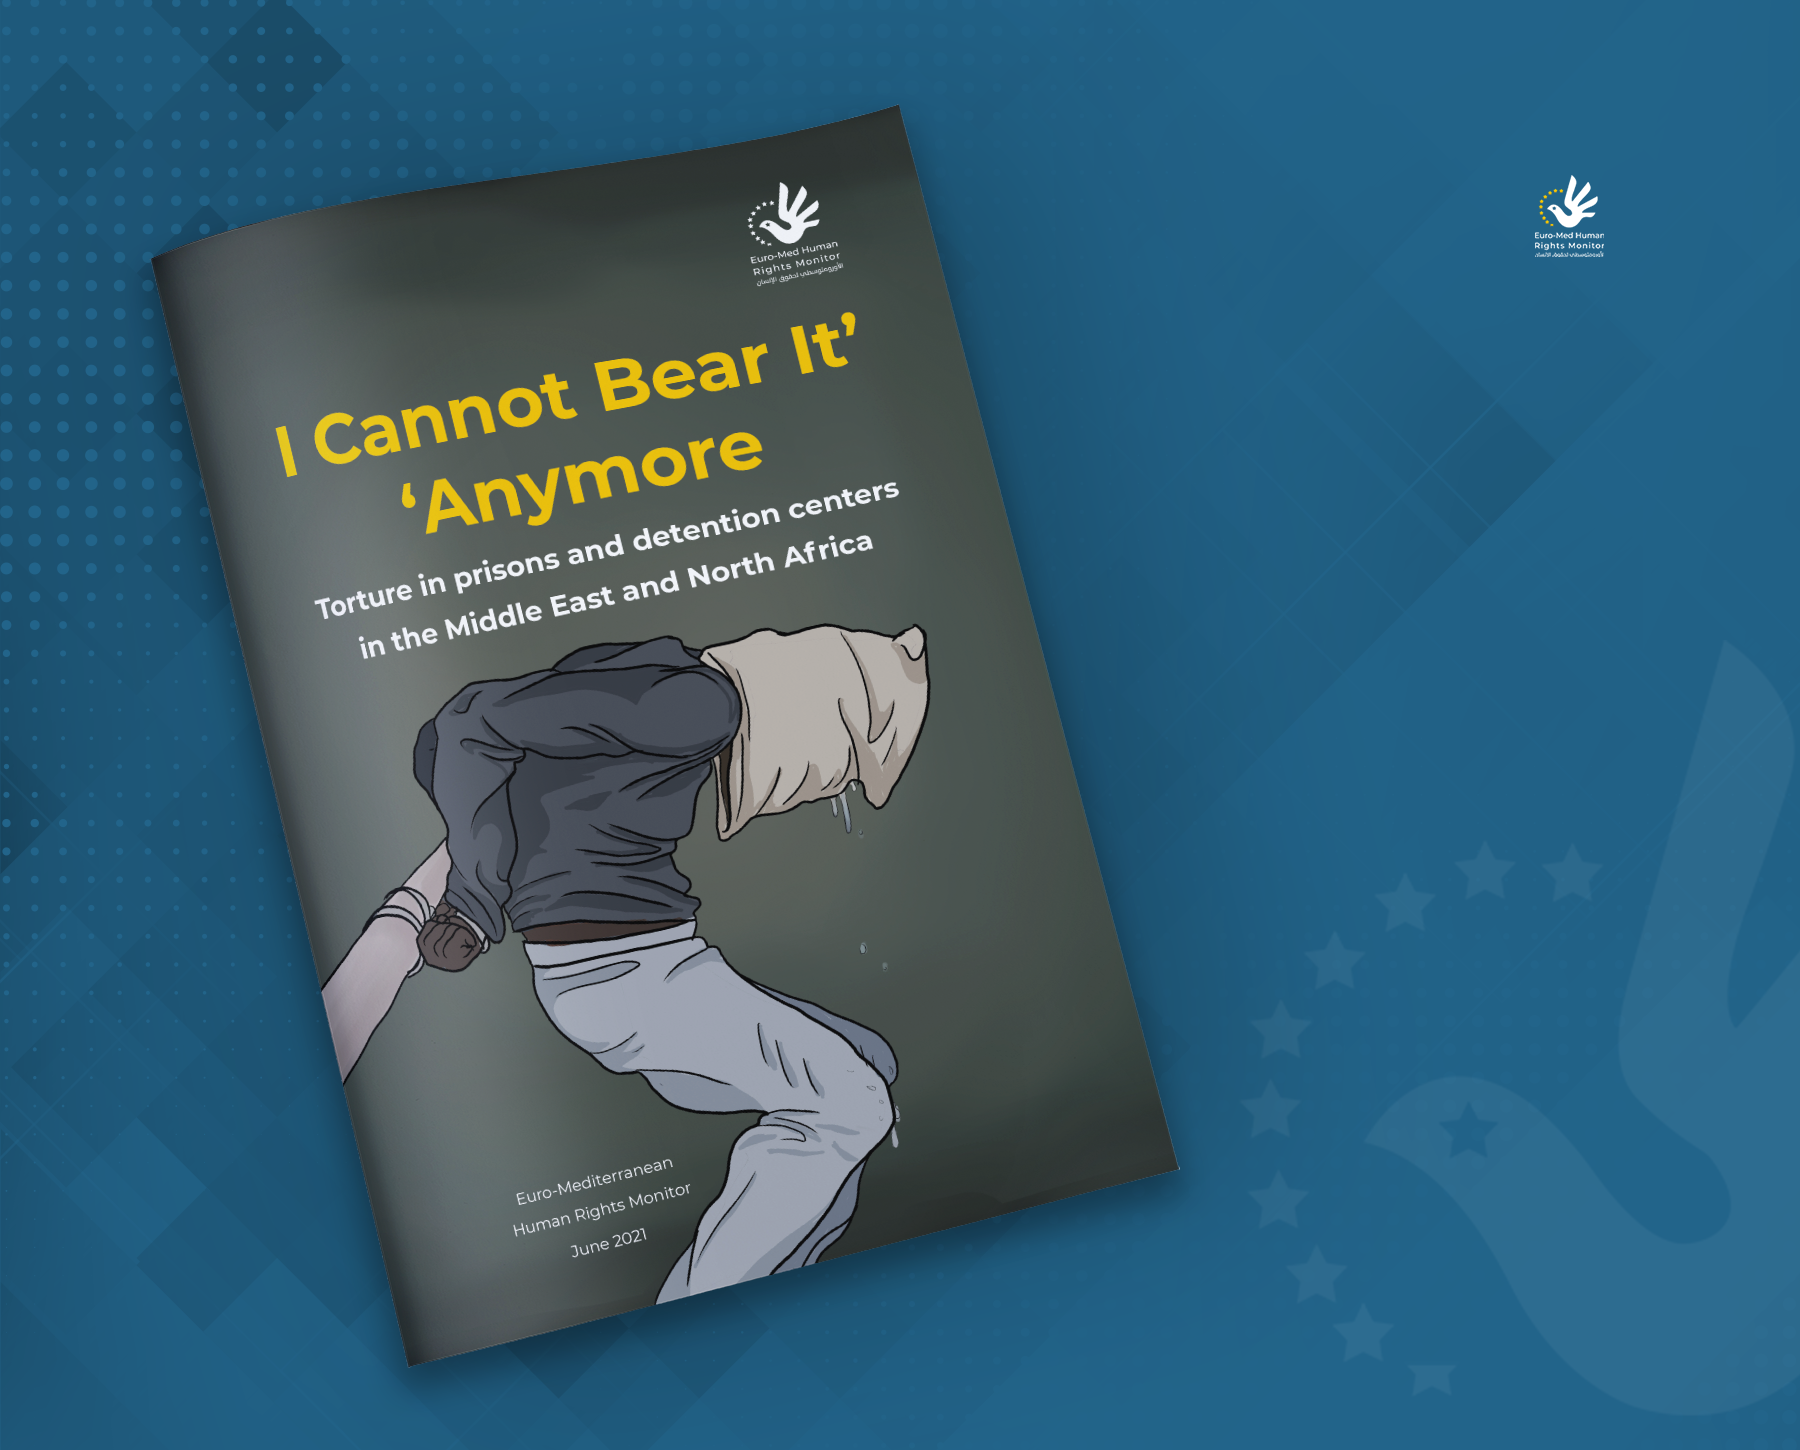 I Cannot Bear It Anymore: Torture in prisons and detention centers in the Middle East and North Africa